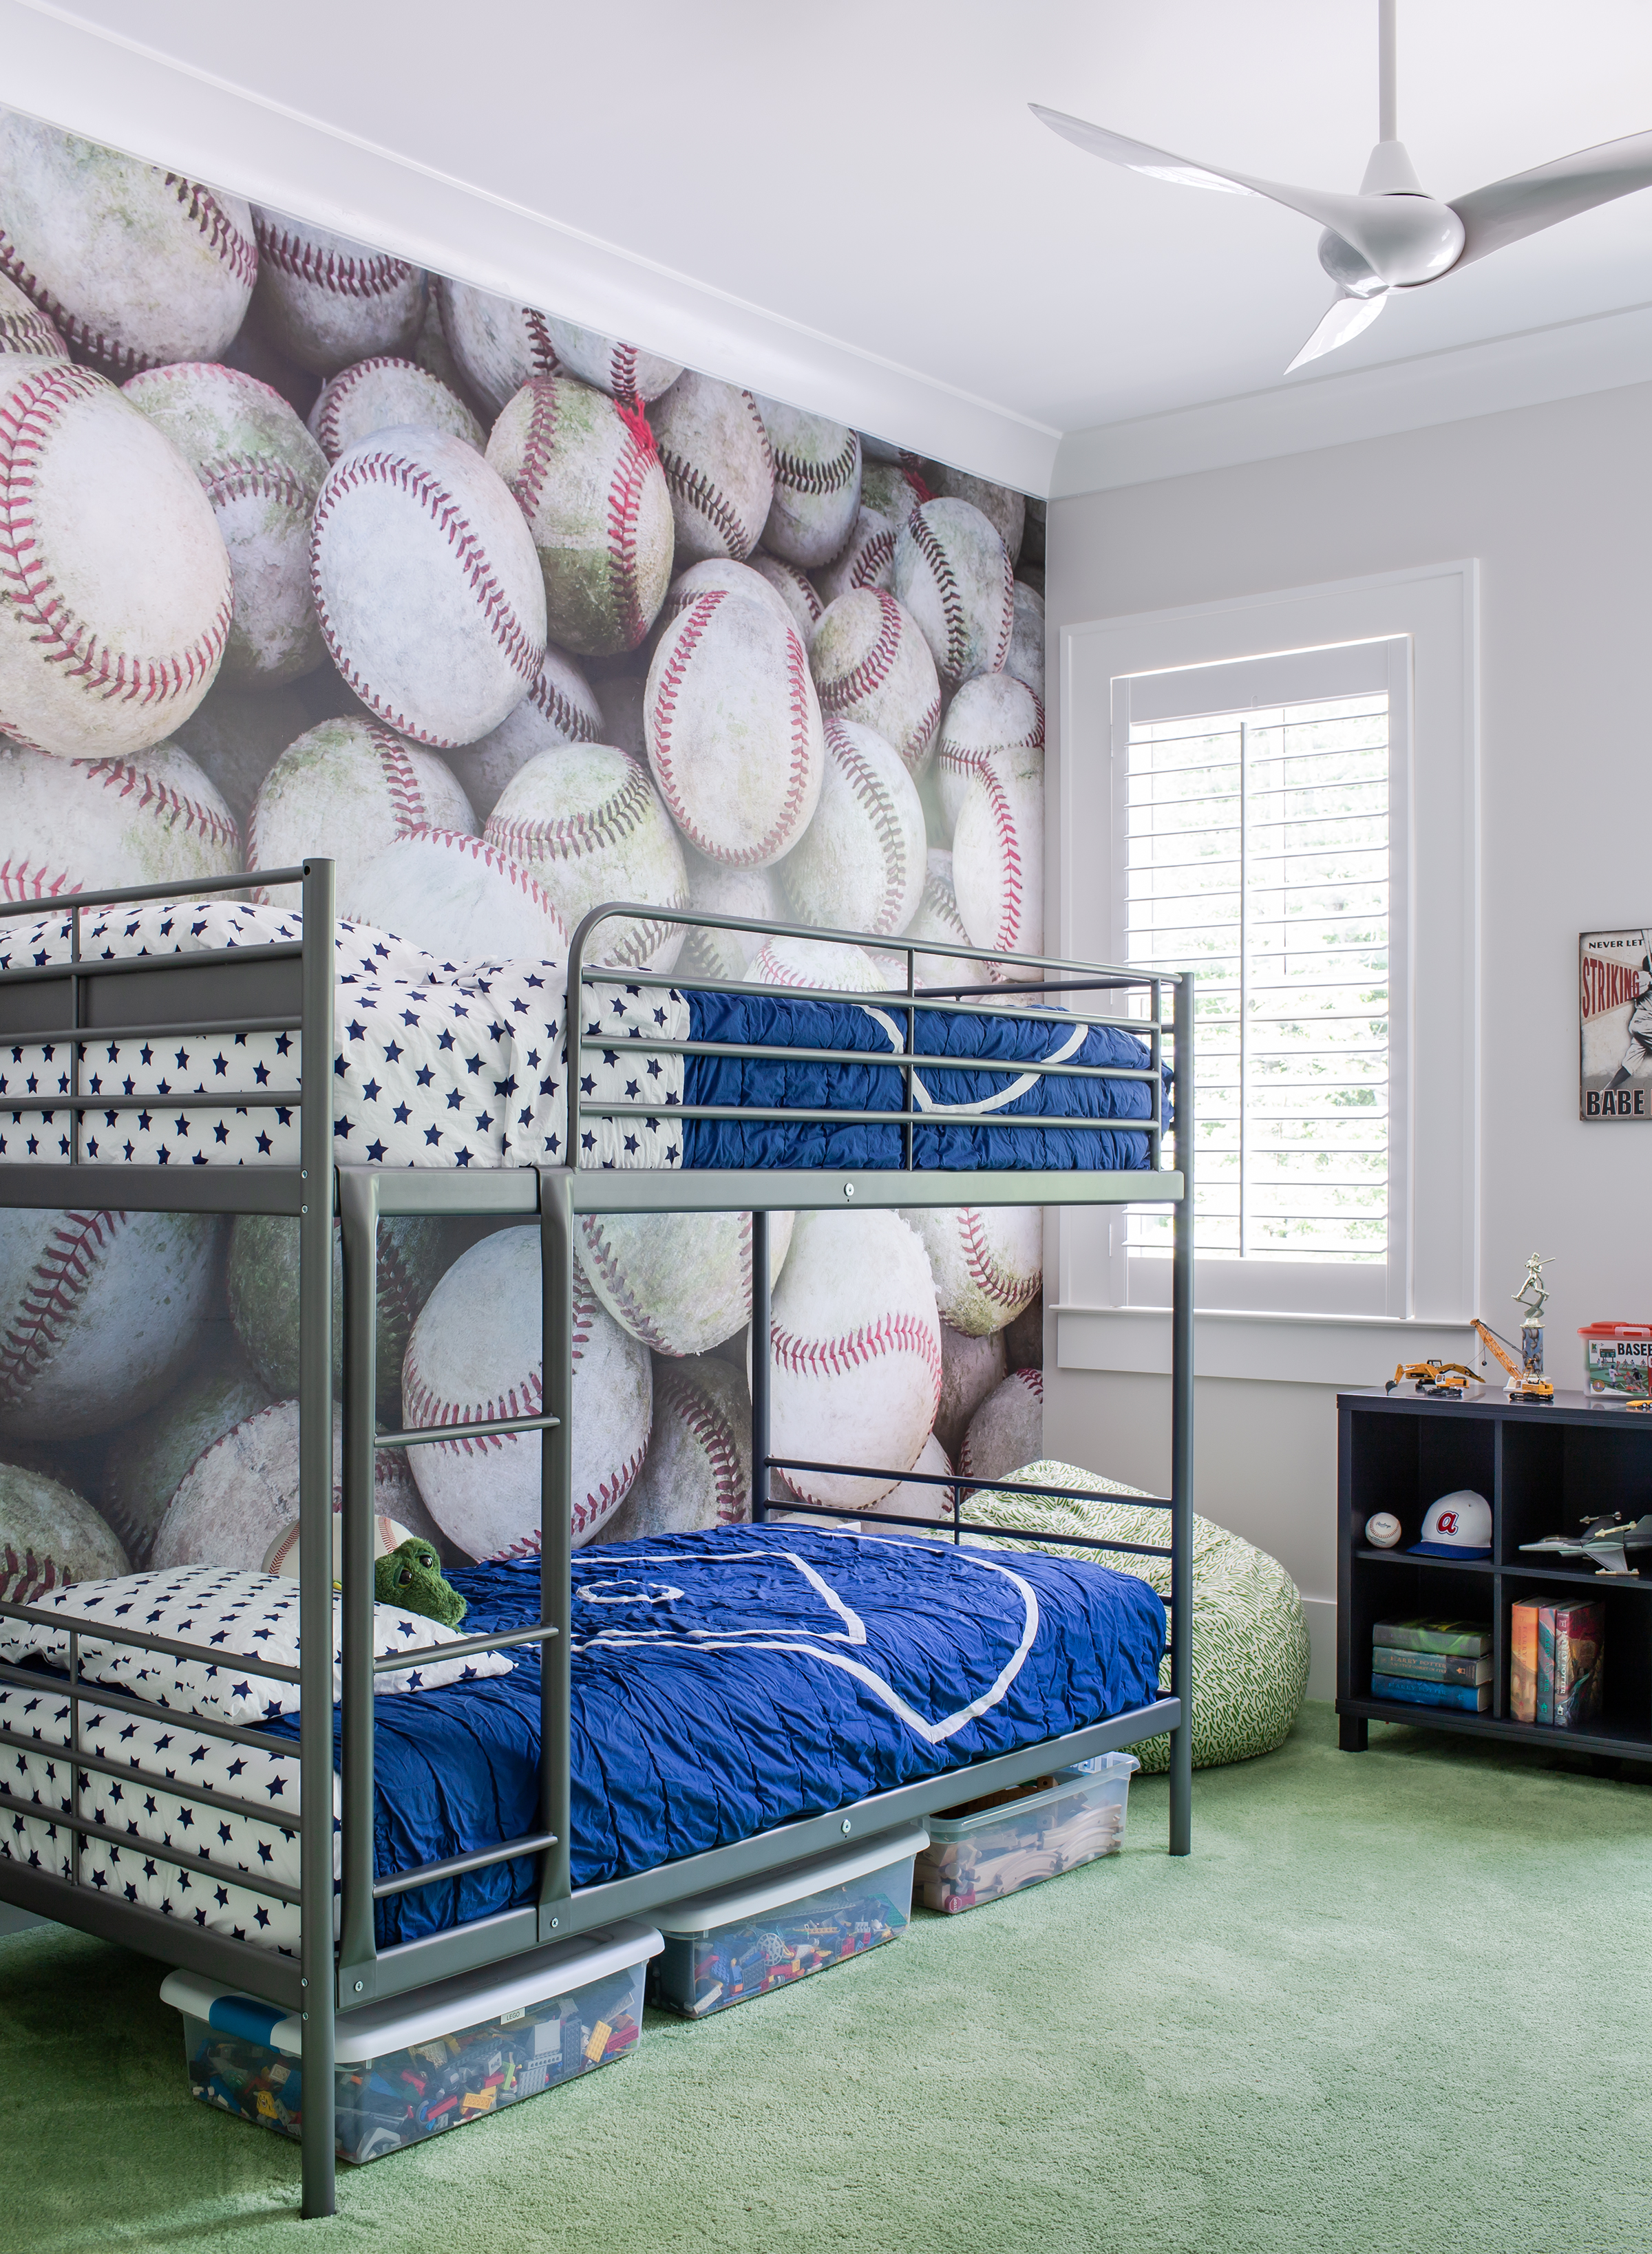 marietta boy's bedroom | new construction | jeff herr photography